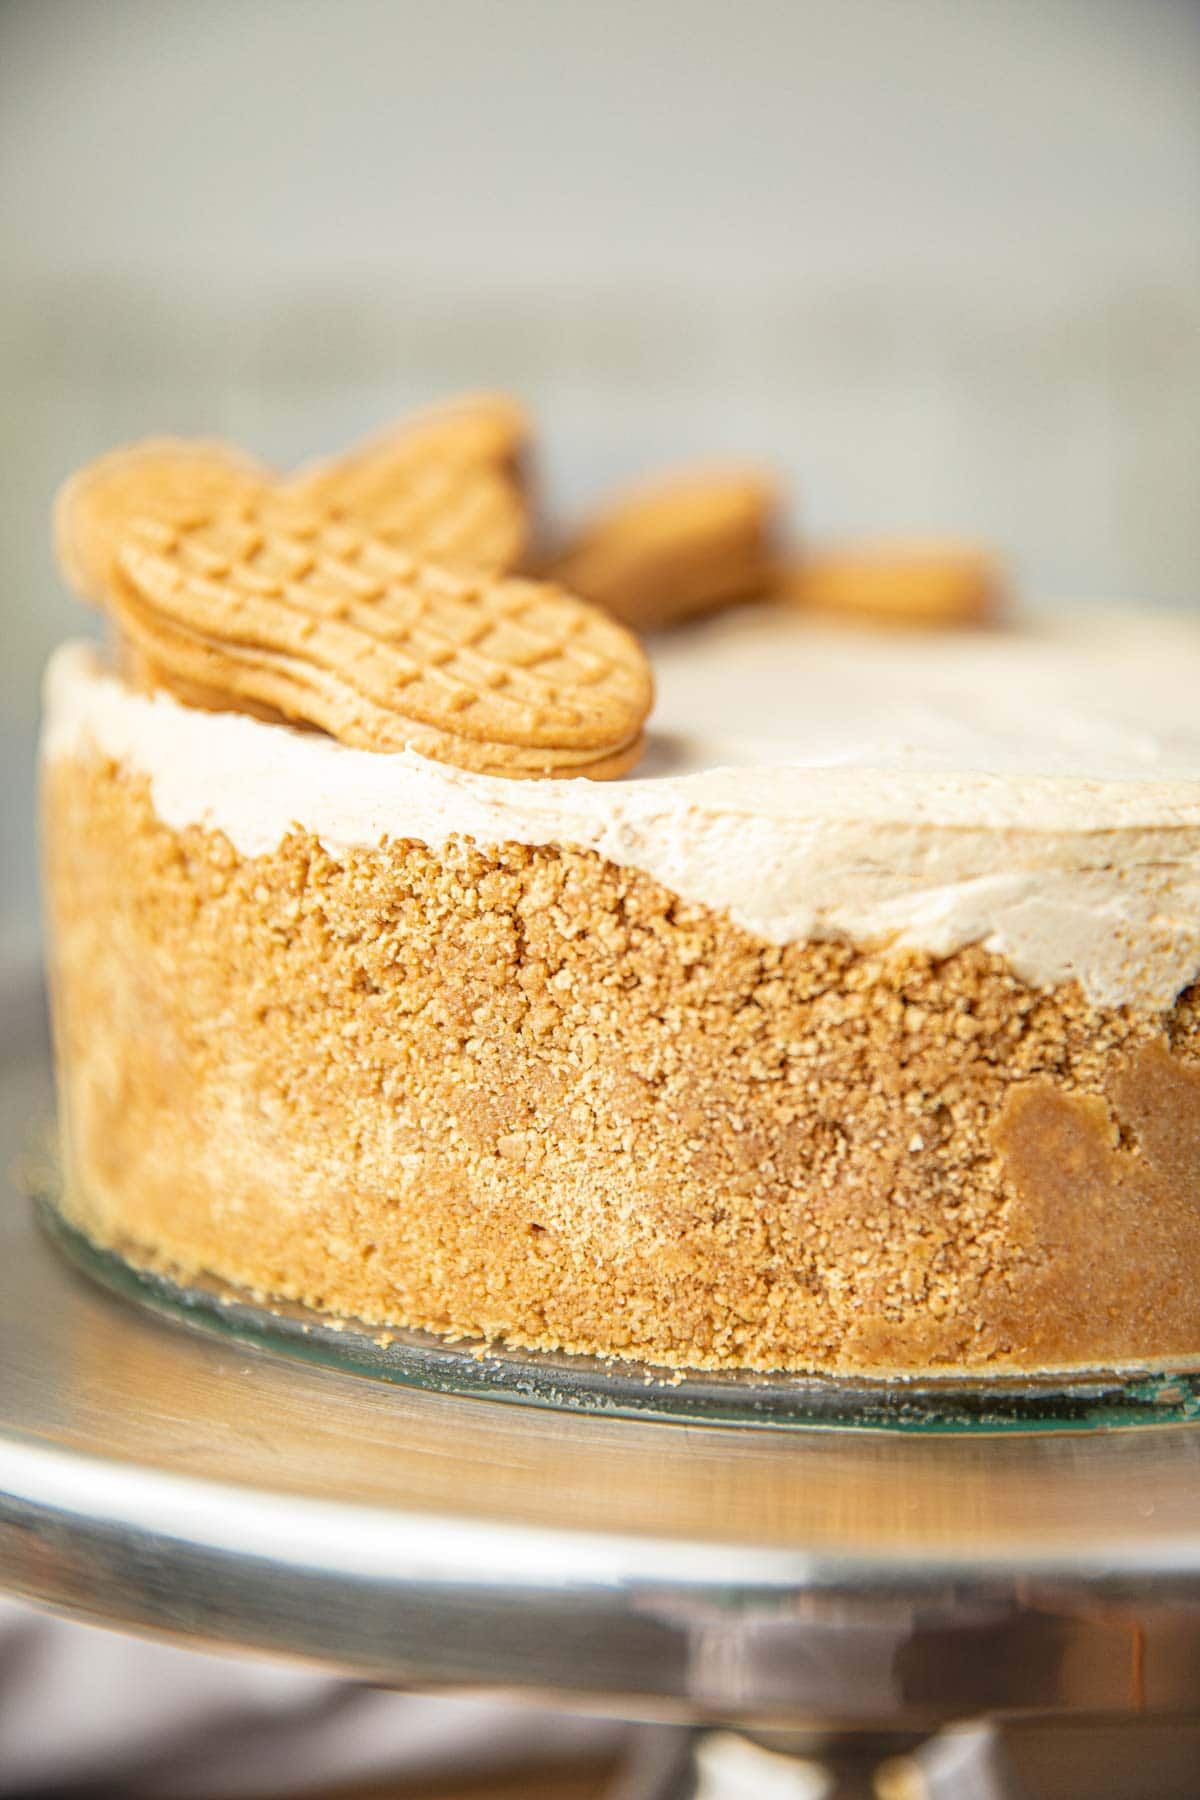 Whole Peanut Butter Pie with Nutter Butter Crust on Cake Stand